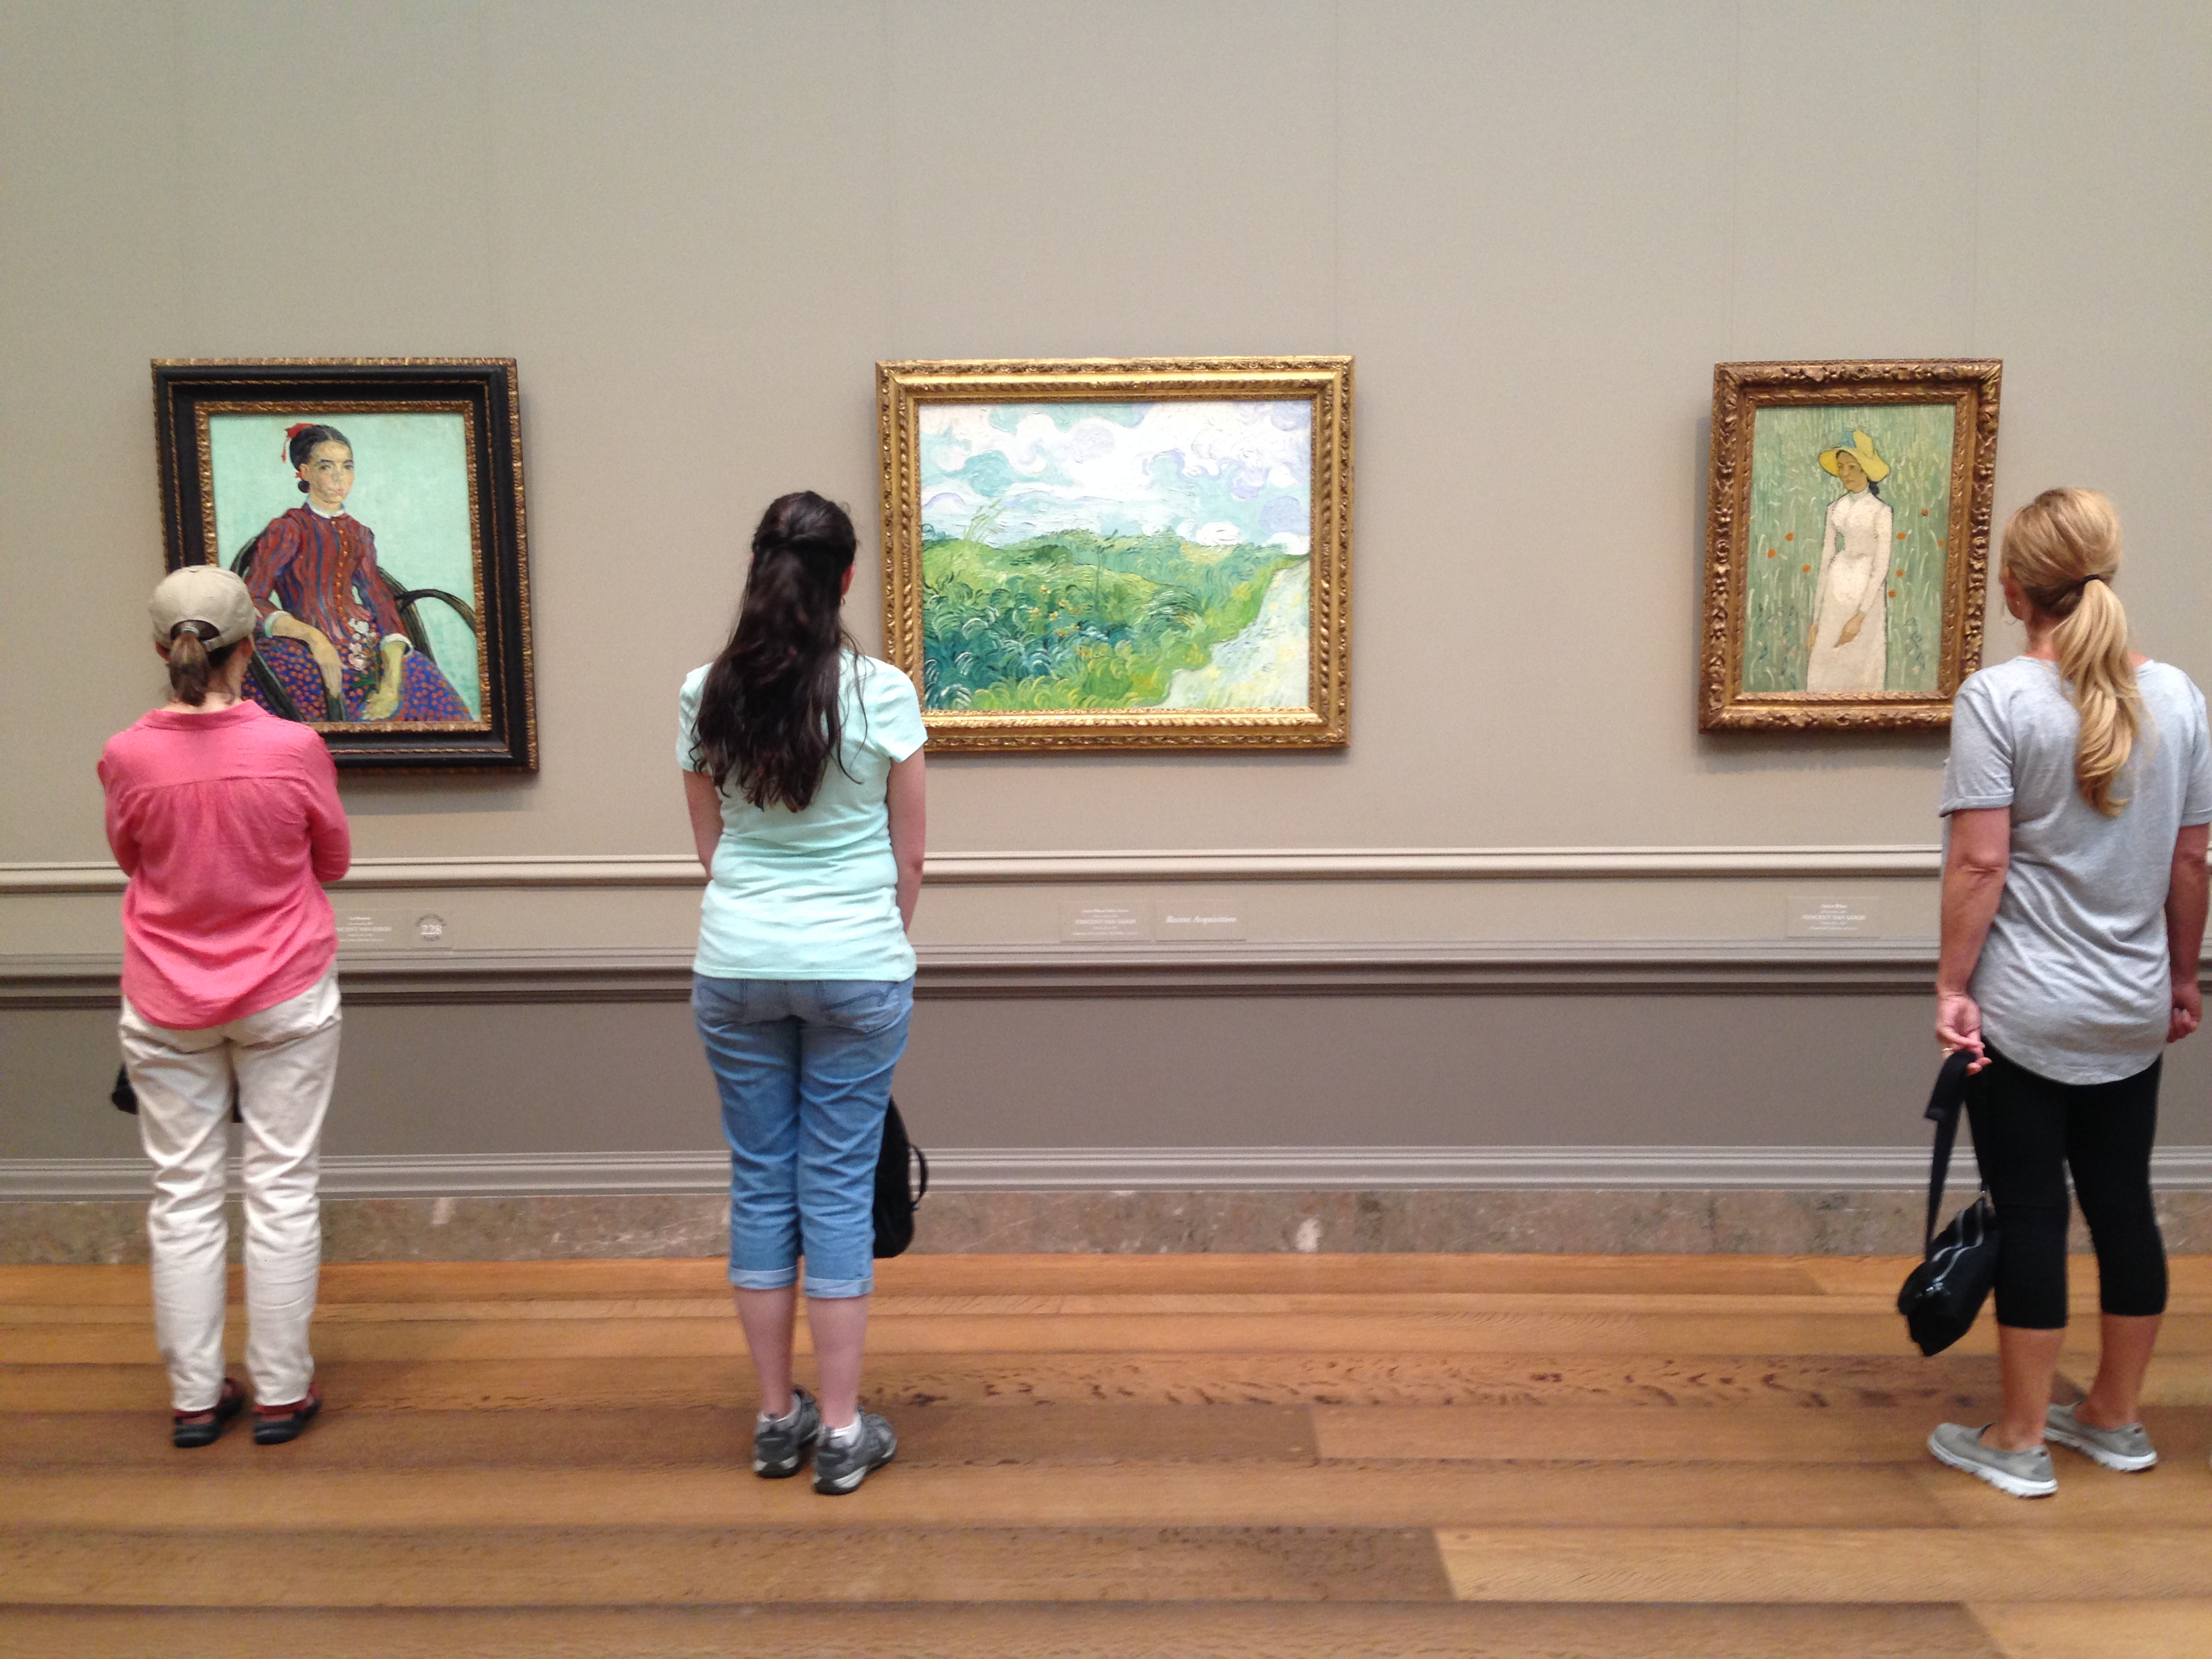 Arts participation or everyday participation? Looking at art in the Smithsonian